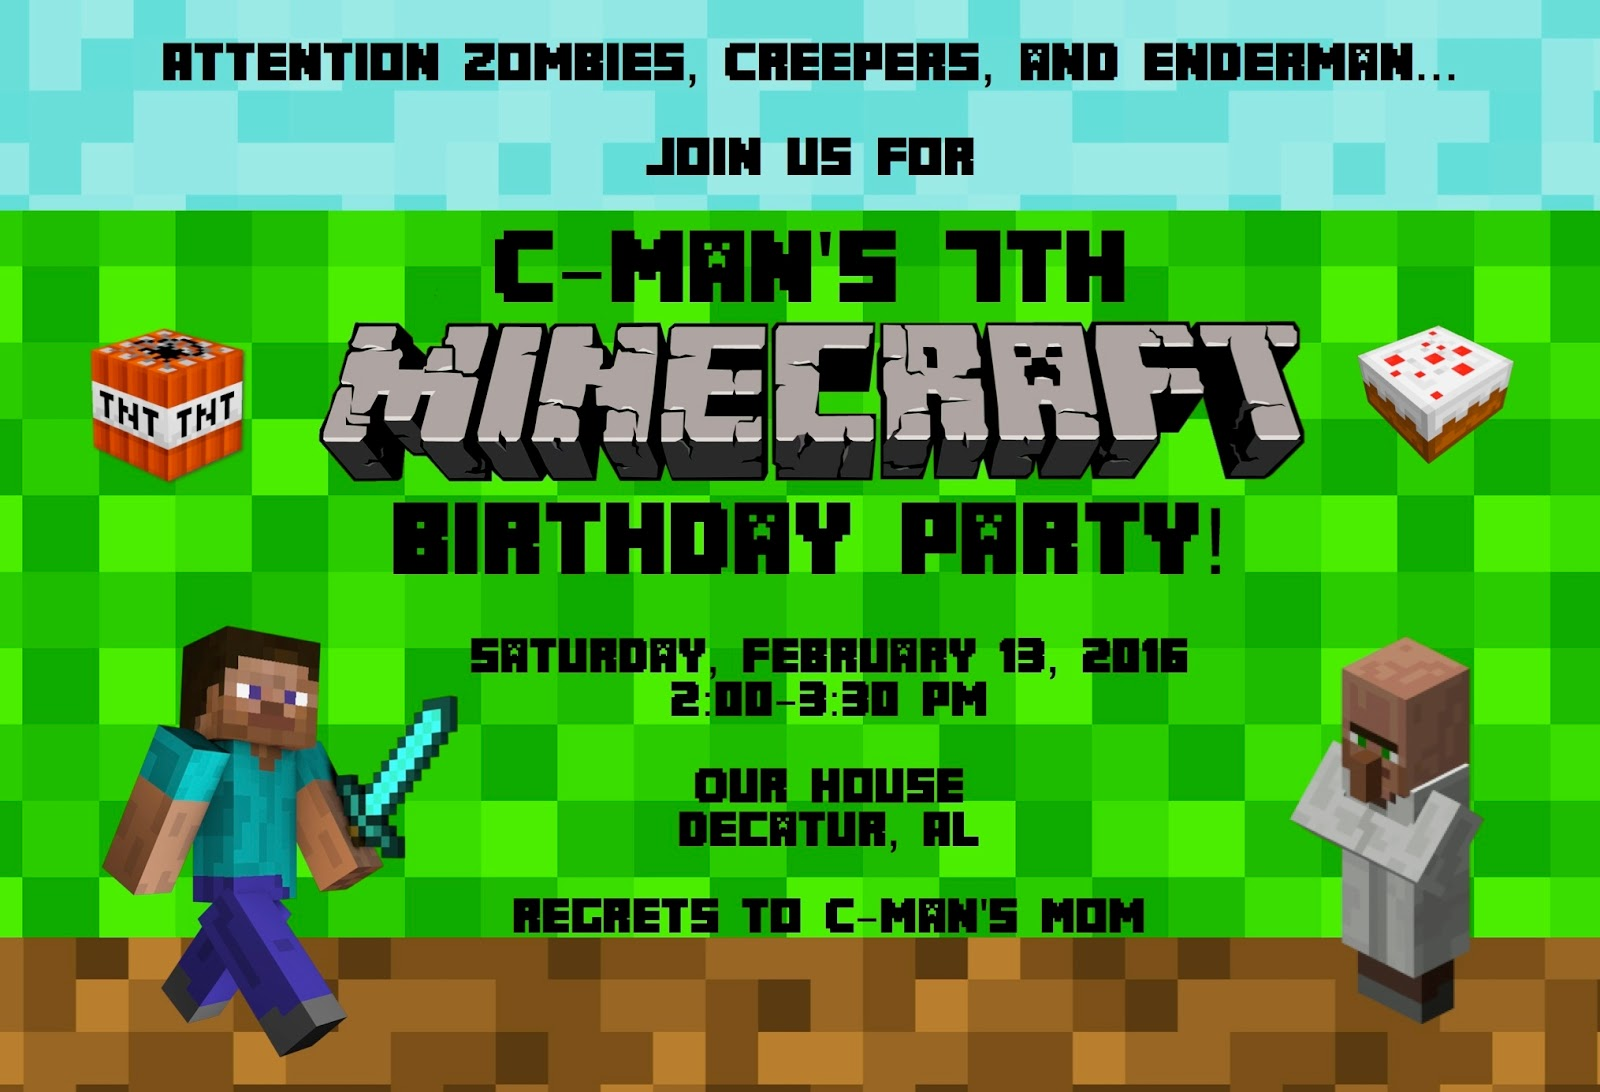 A disney moms thoughts minecraft birthday party invitation a i cant believe its already time for birthday party 7 for c man last year was the year he outgrew a disney themed party and went with a football theme filmwisefo